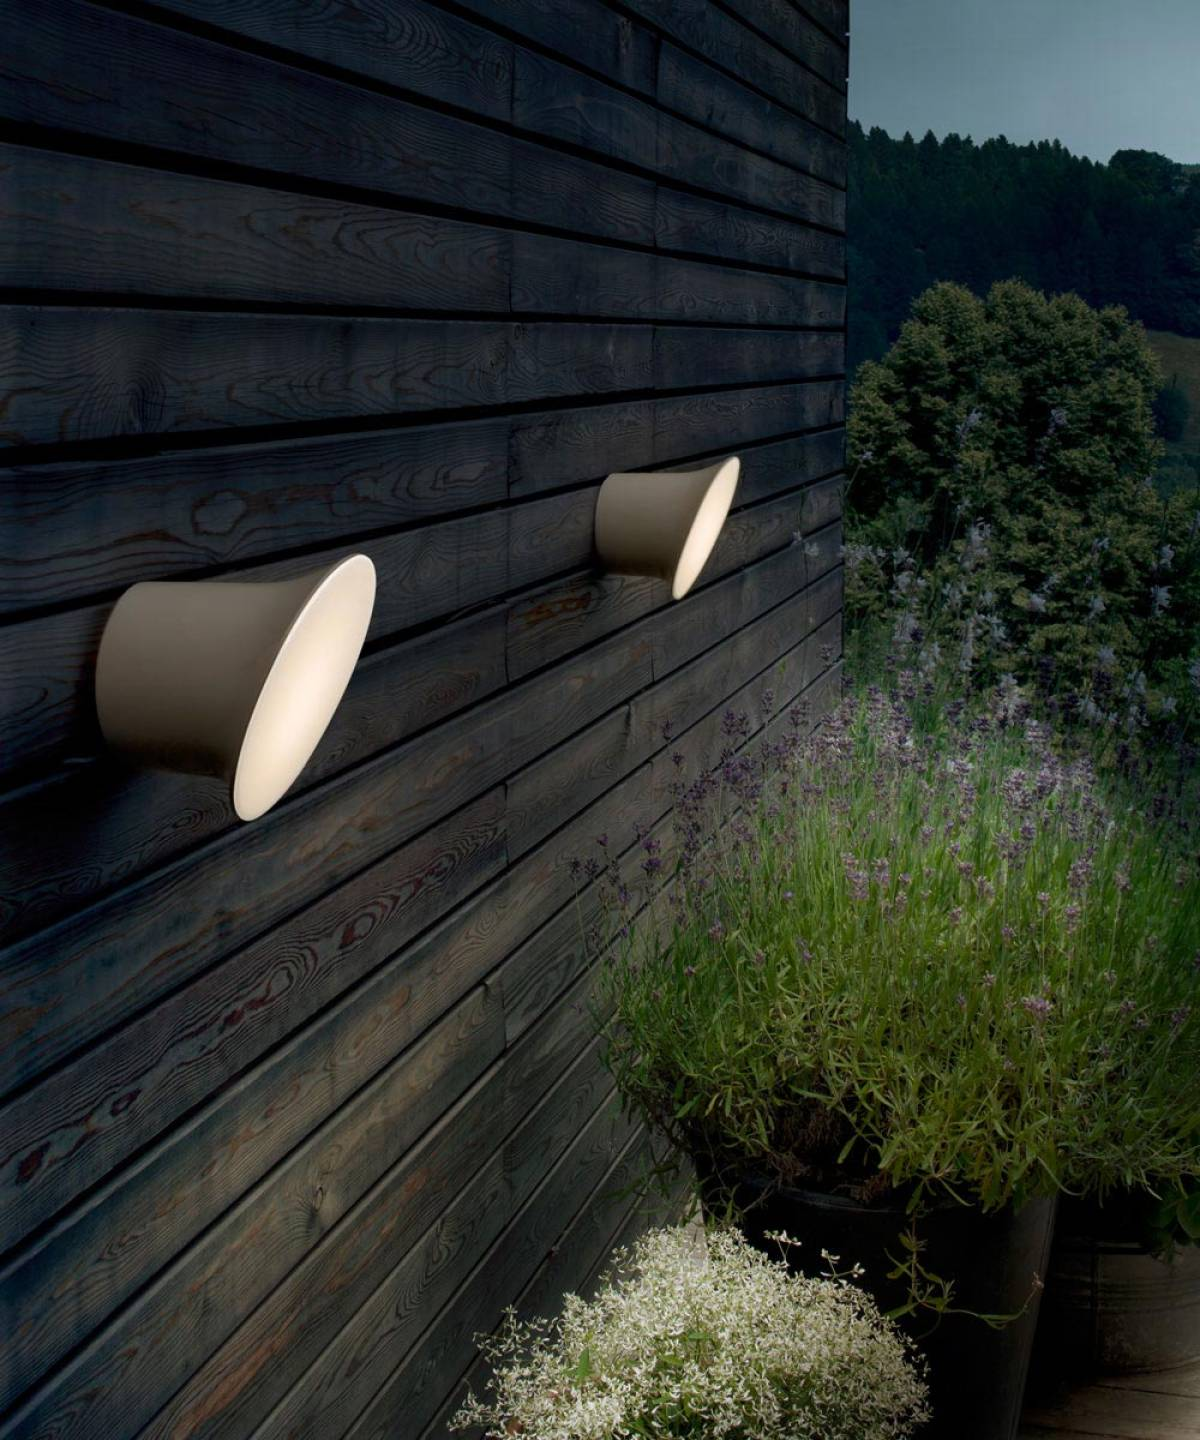 Ecran outdoor lamp Luceplan